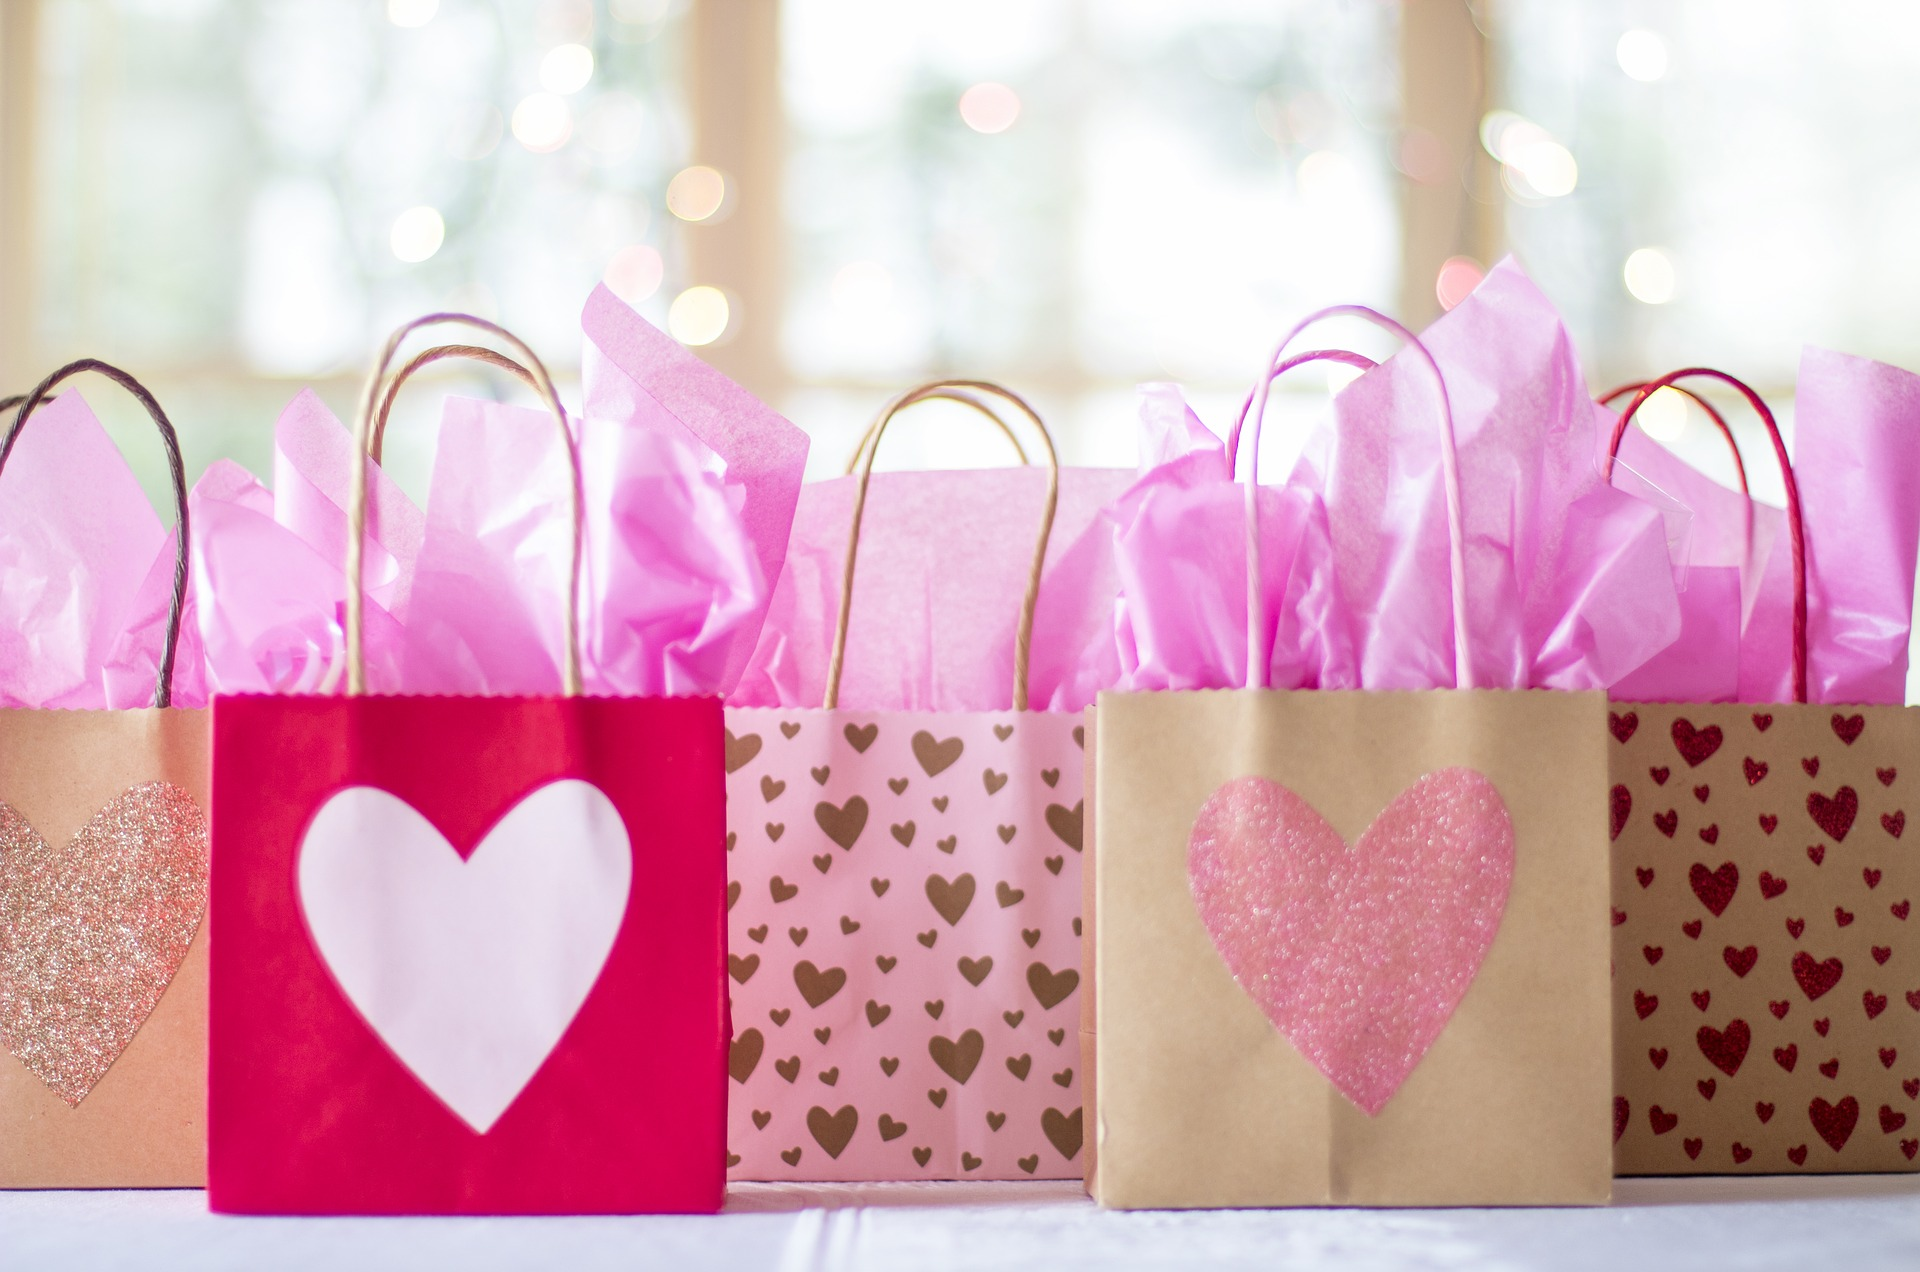 How Key Is Promotional Merchandise for Increased Brand Awareness?